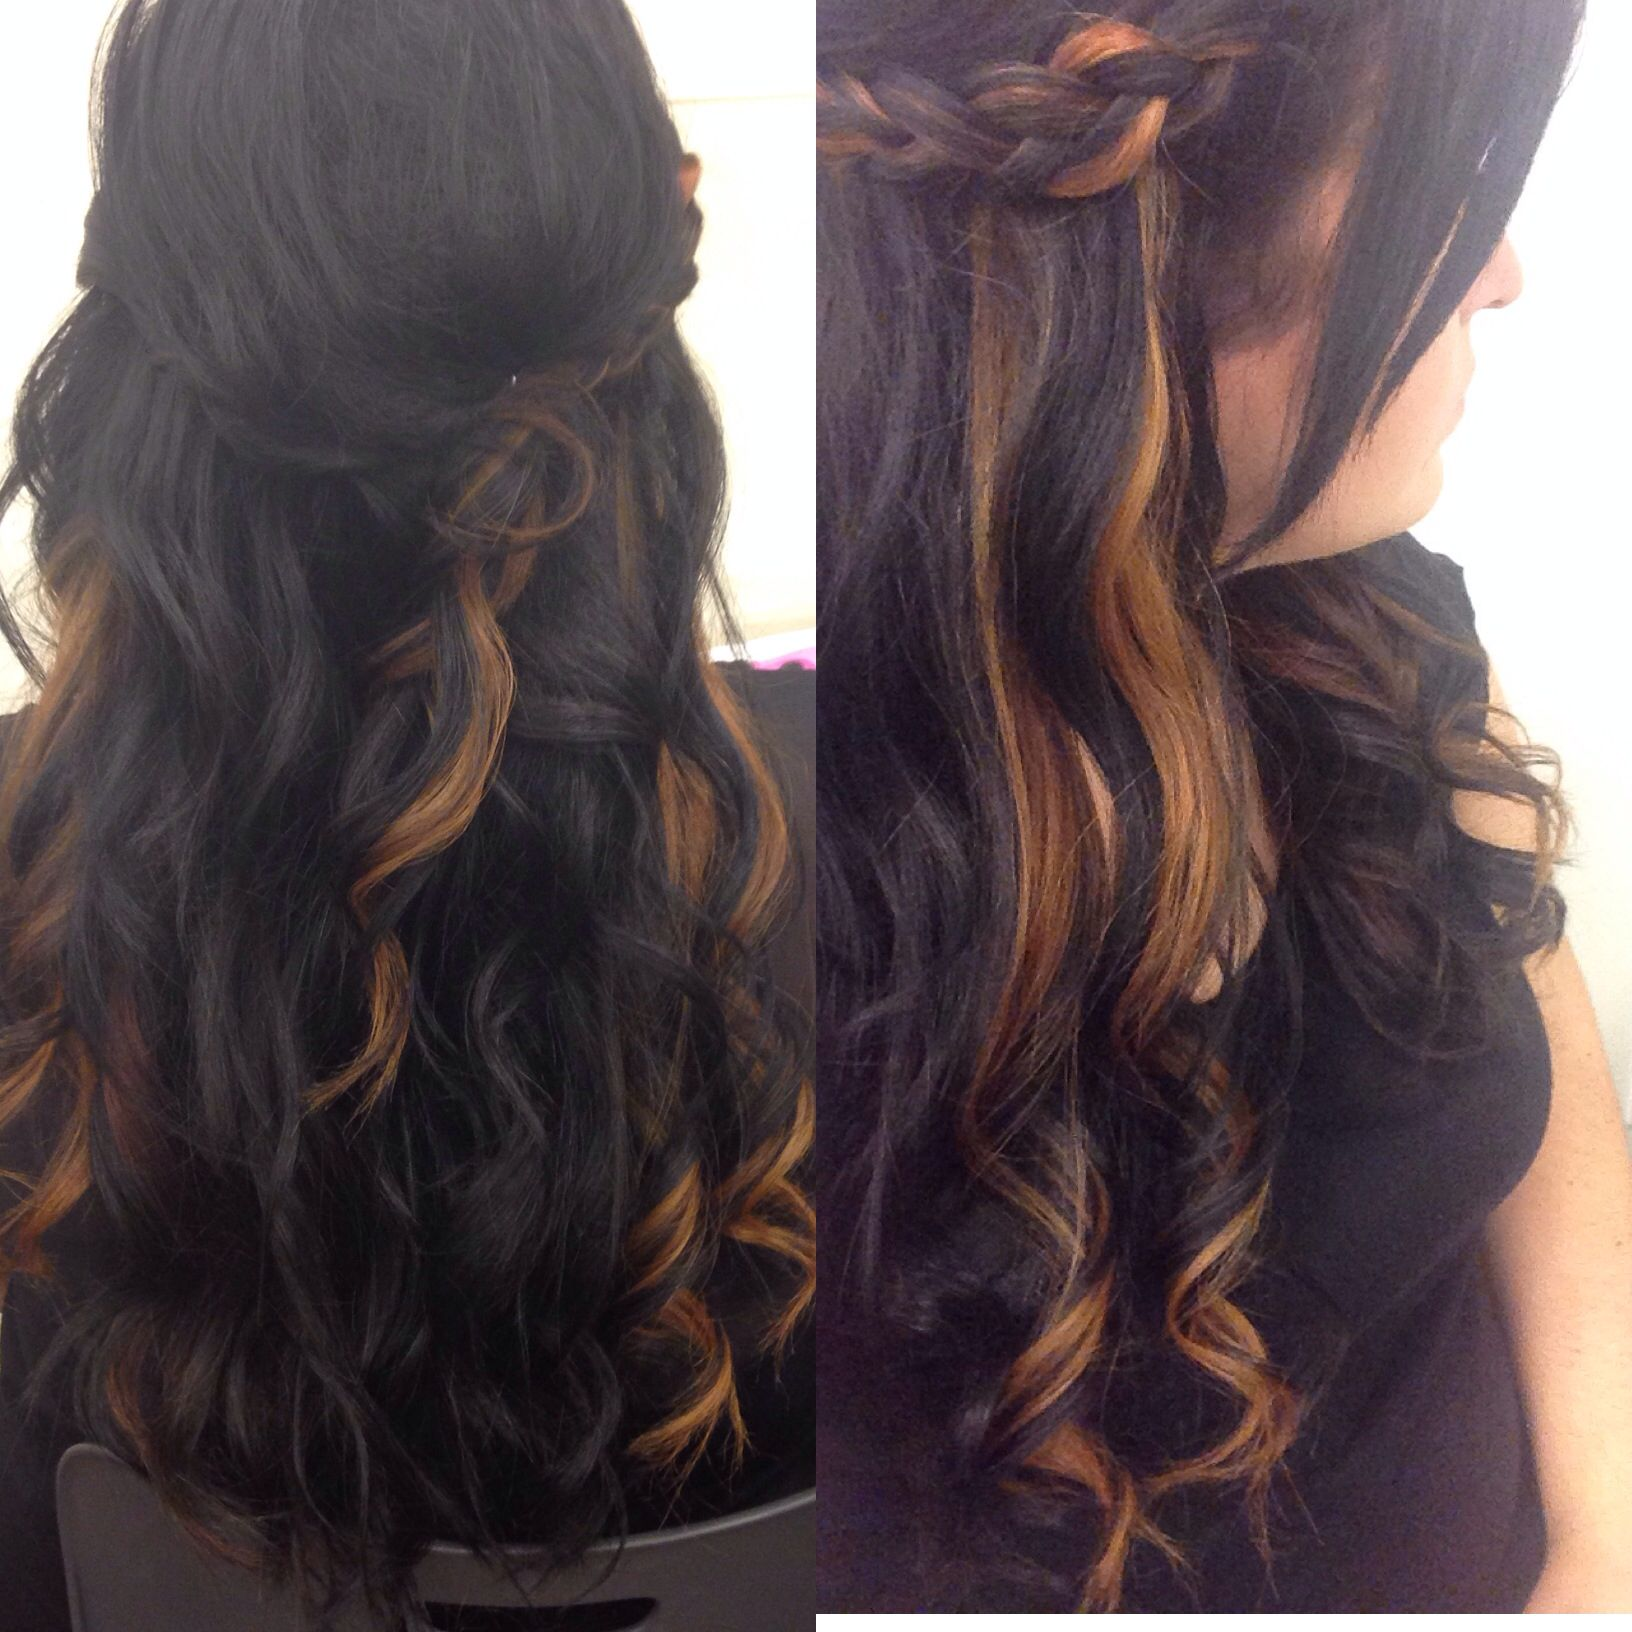 peekaboo highlights caramel highlights braid and wand